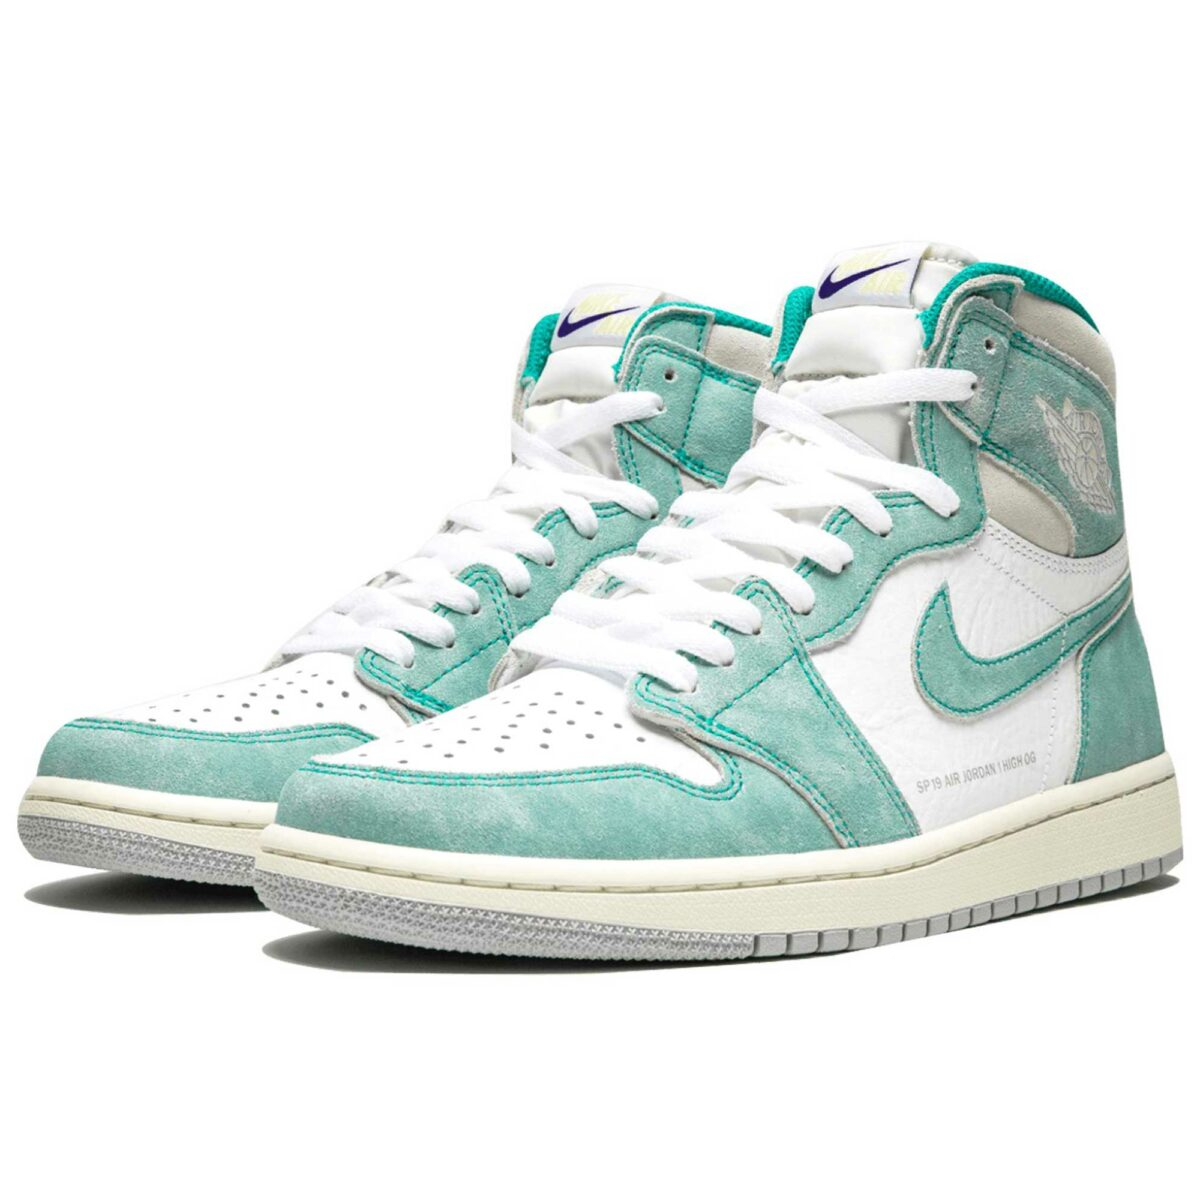 nike air Jordan 1 retro high og turbo green 555088_311 купить